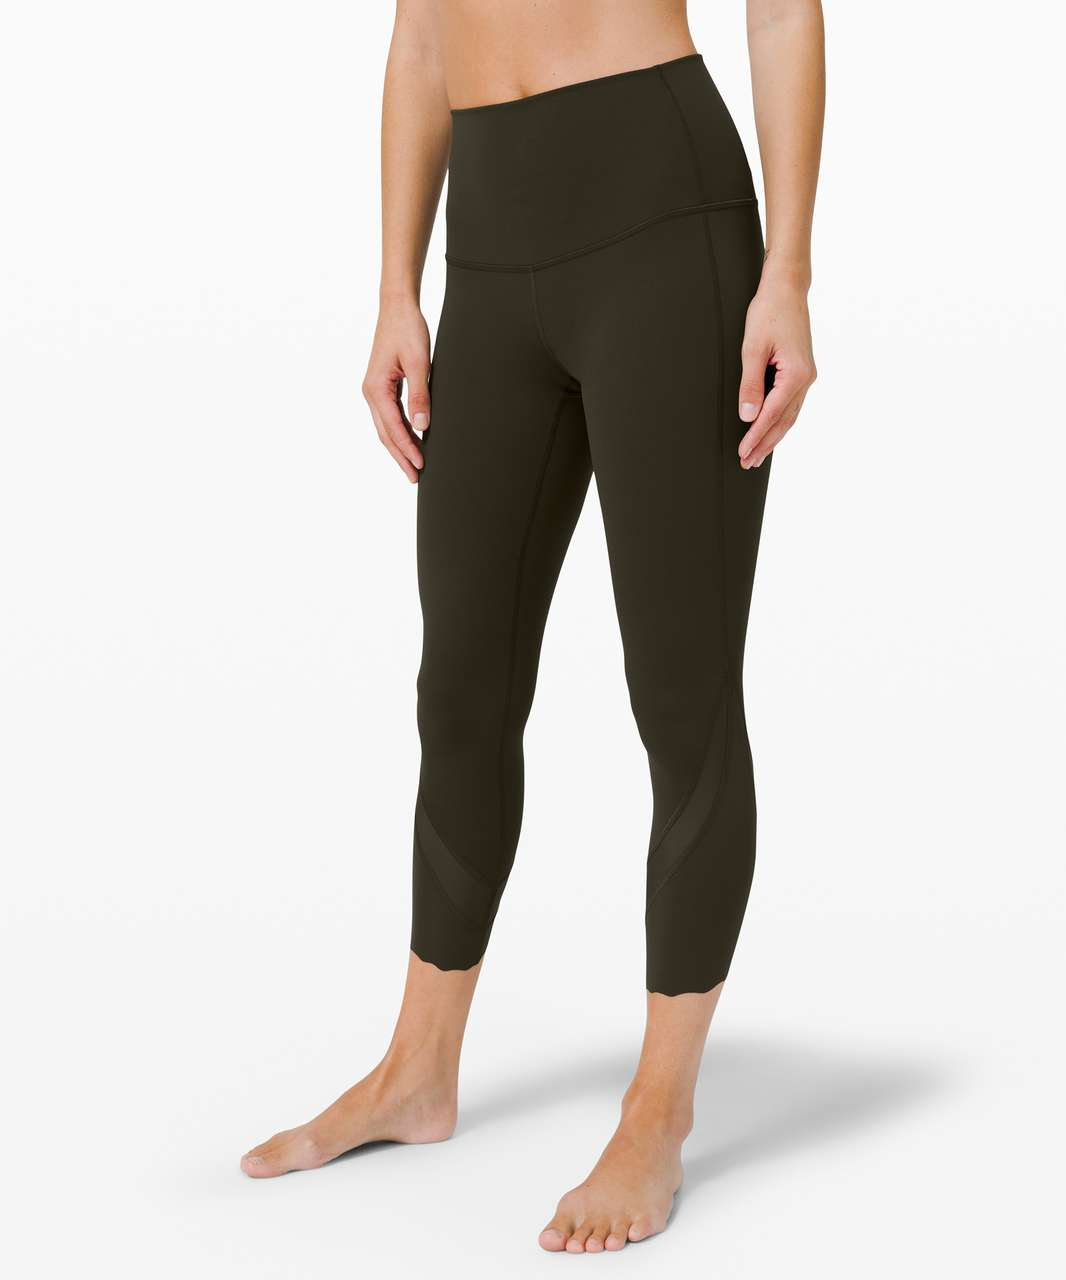 "Lululemon Wunder Under High-Rise Crop 23"" *Updated Scallop Full-On Luxtreme - Dark Olive"